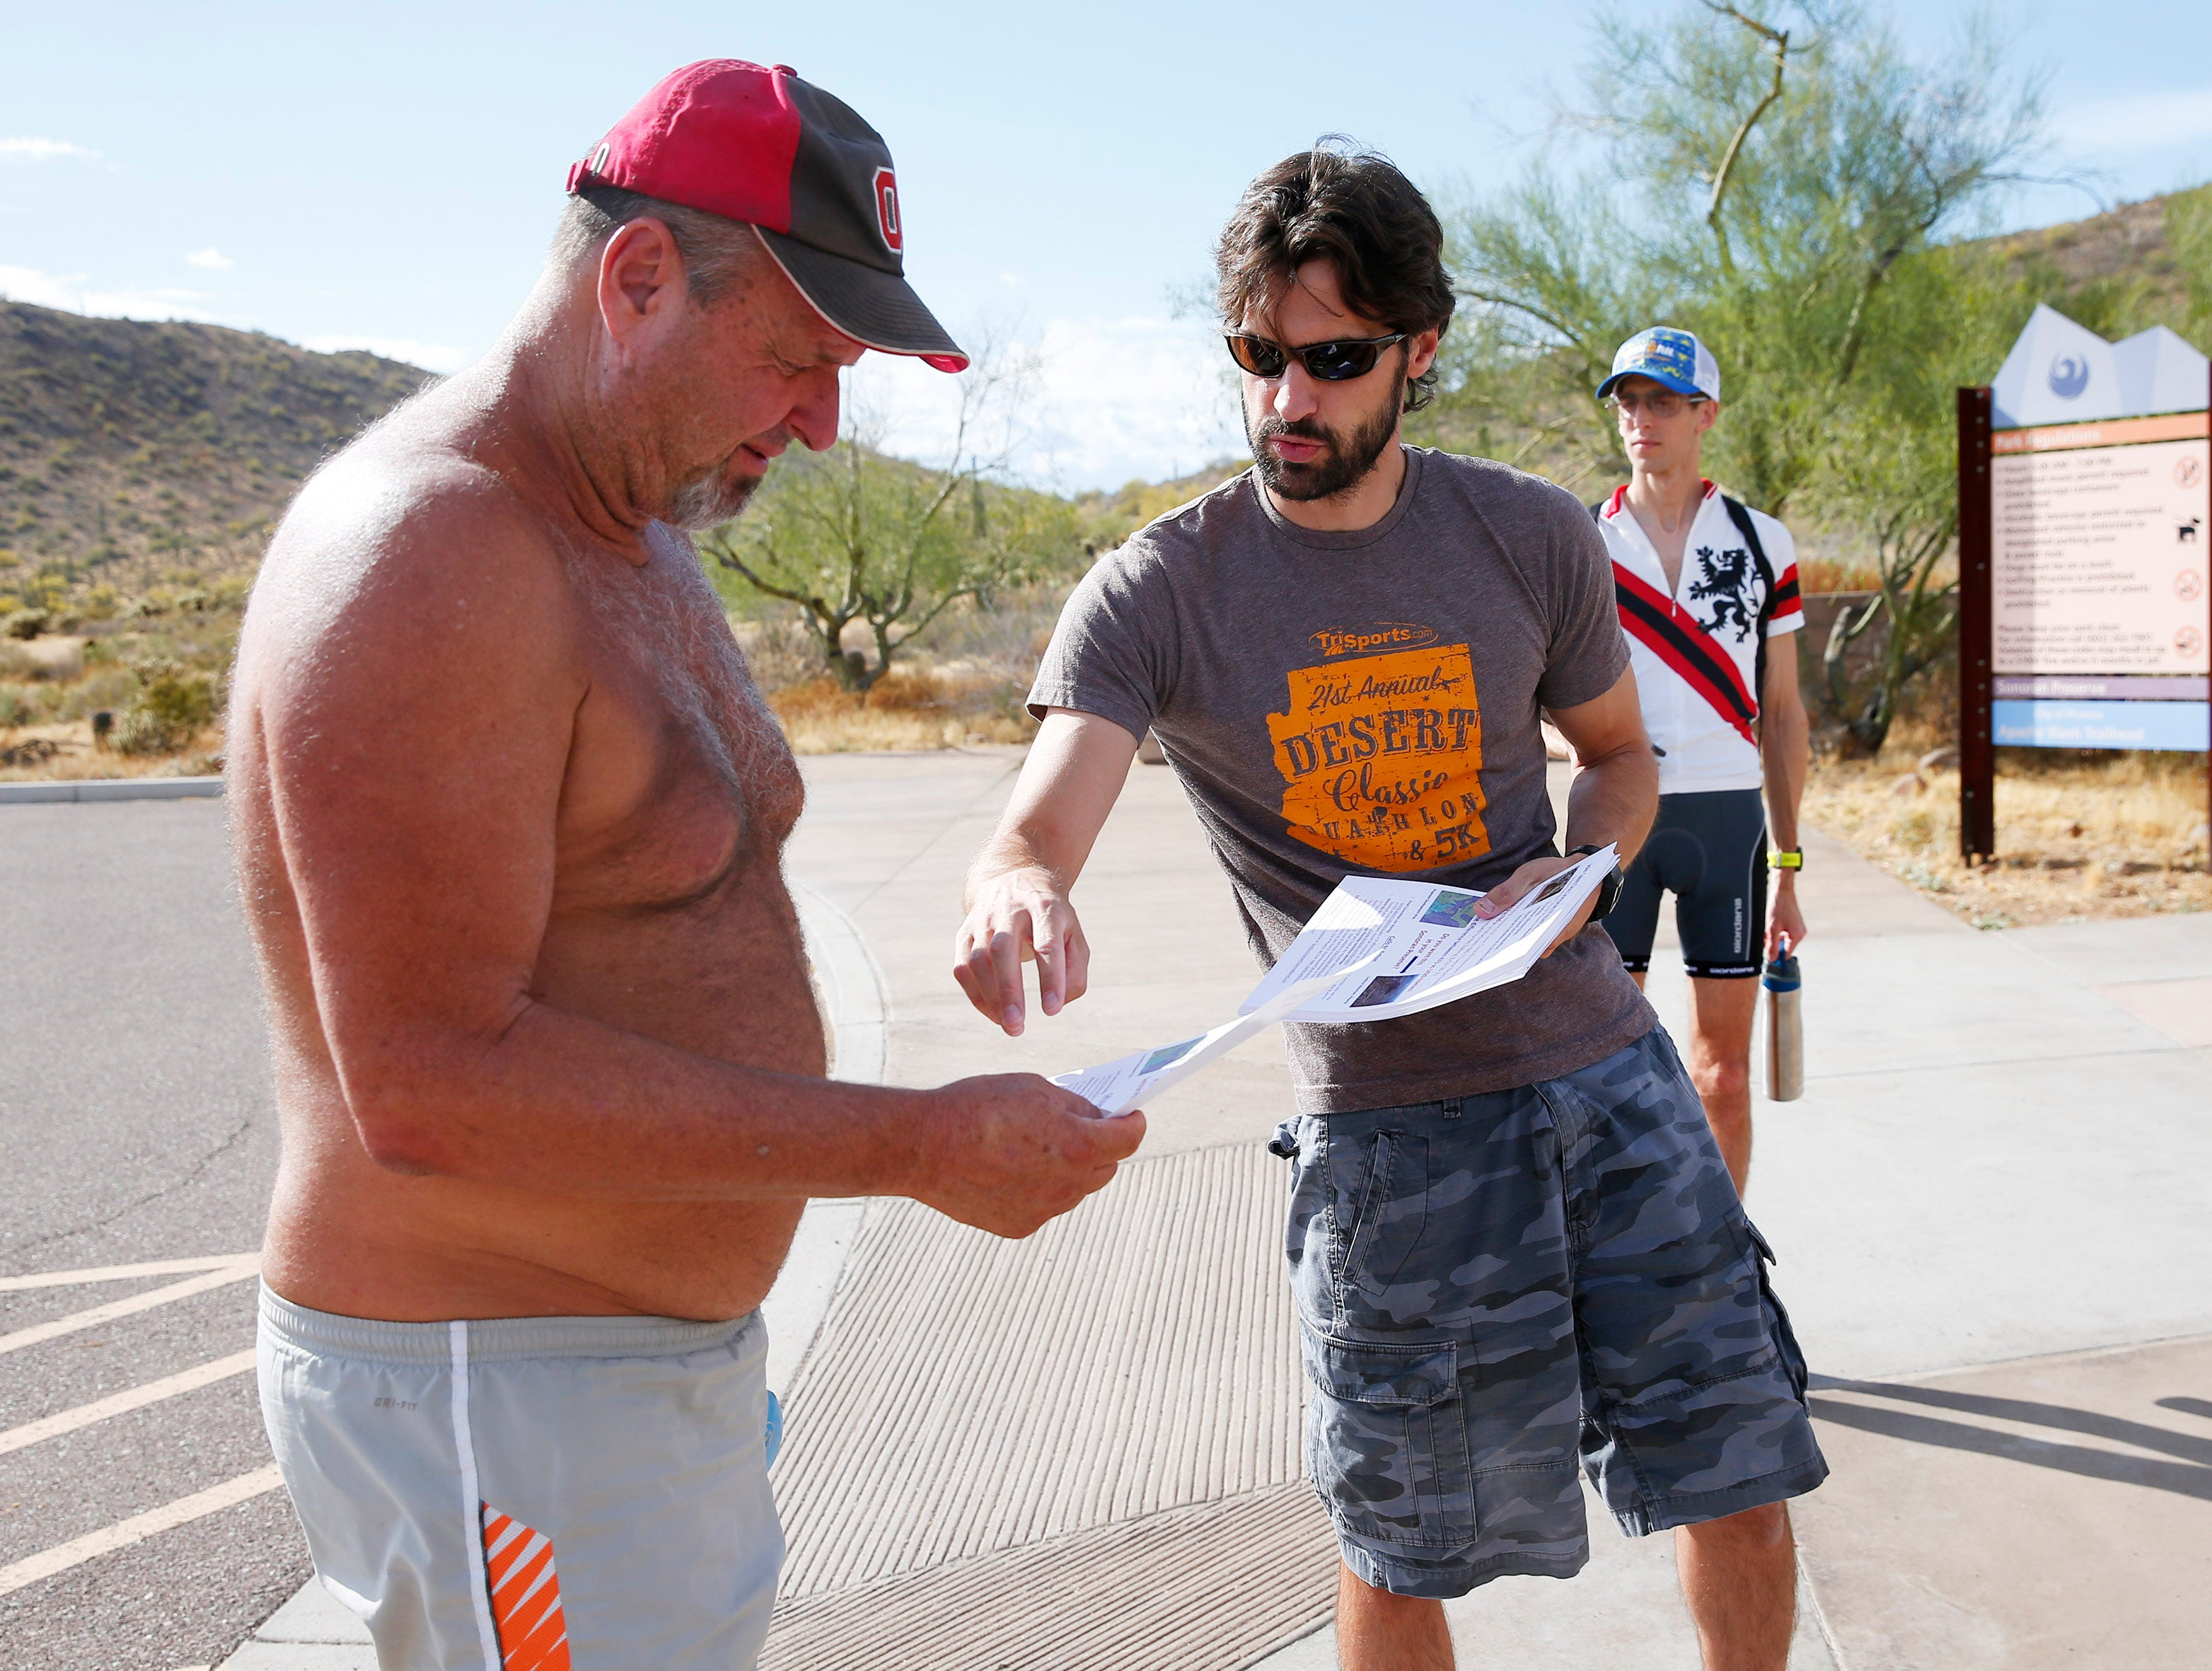 Gary Kirkilas (center) hands out a flyer to Bobby McGhee at the Apache Wash Trailhead in the Sonoran Preserve in north Phoenix May 12, 2019. His group, Save Our Sonoran Preserve, is opposing proposed high-density housing next to the preserve. Behind him is Daniel Centilli, also with the opposition group.